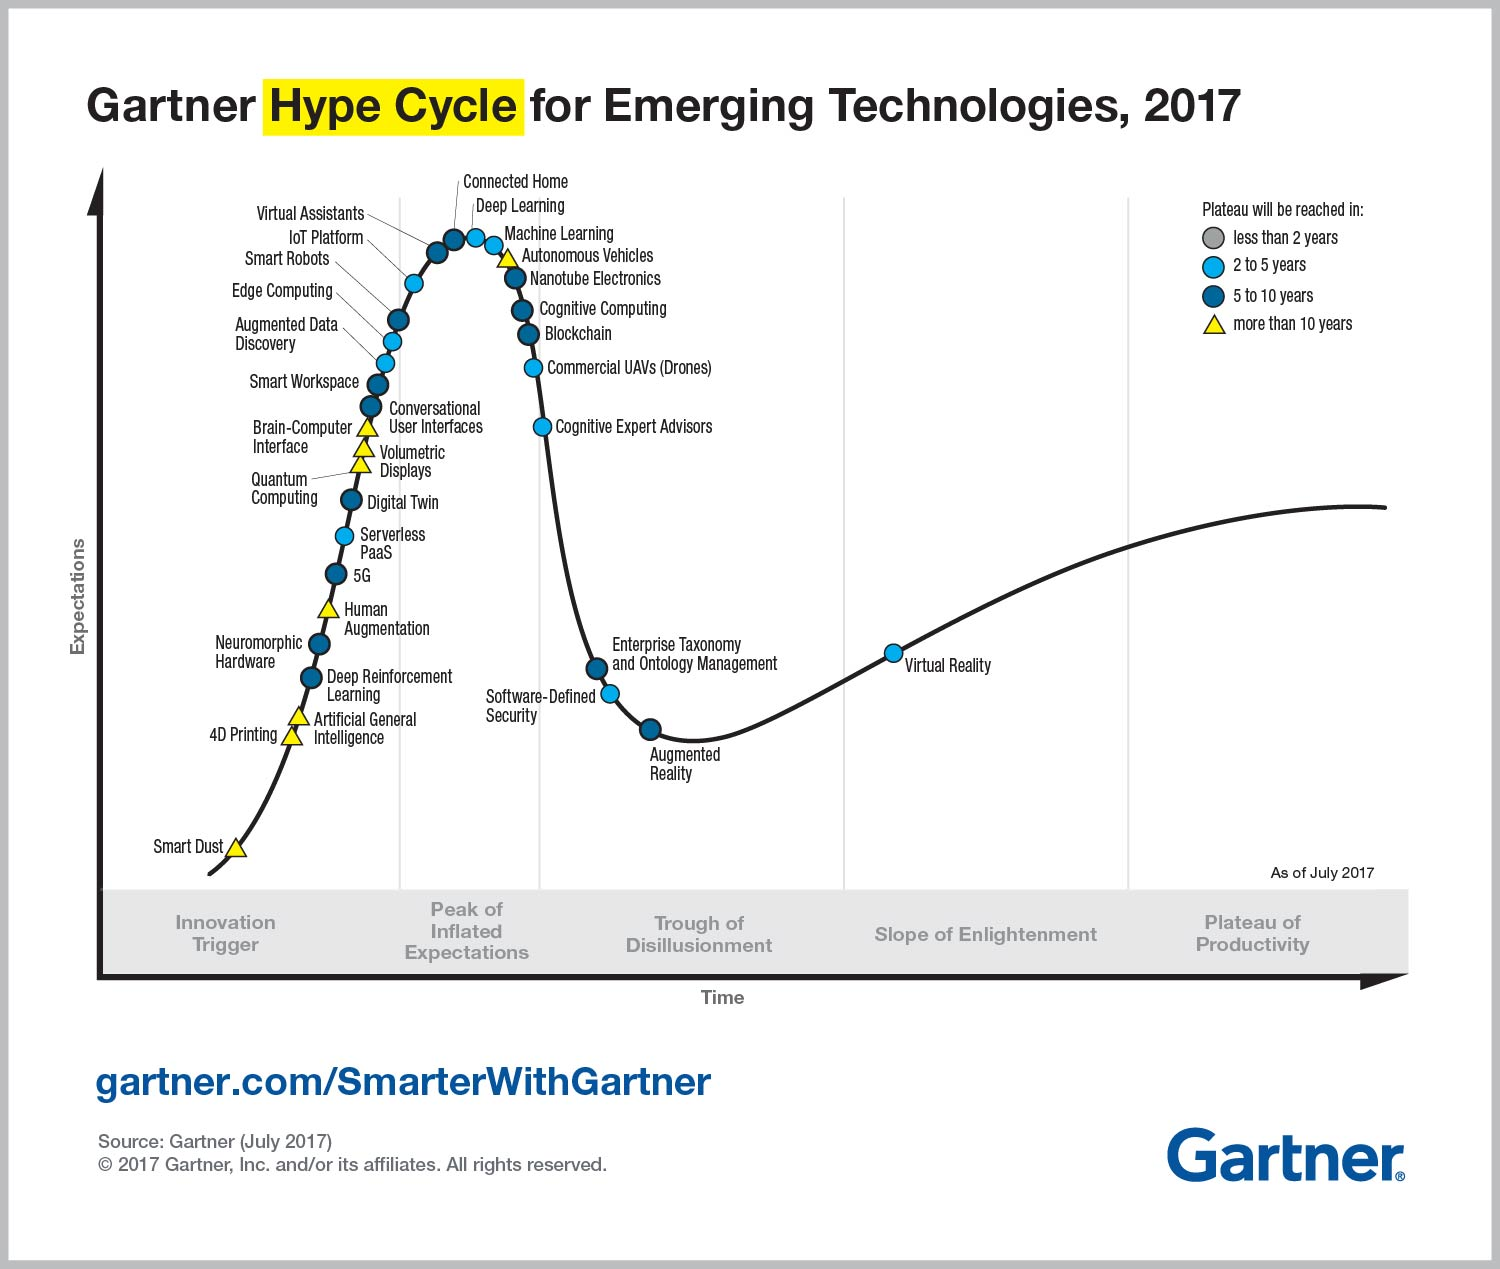 emerging technology hype cycle gartner 2017